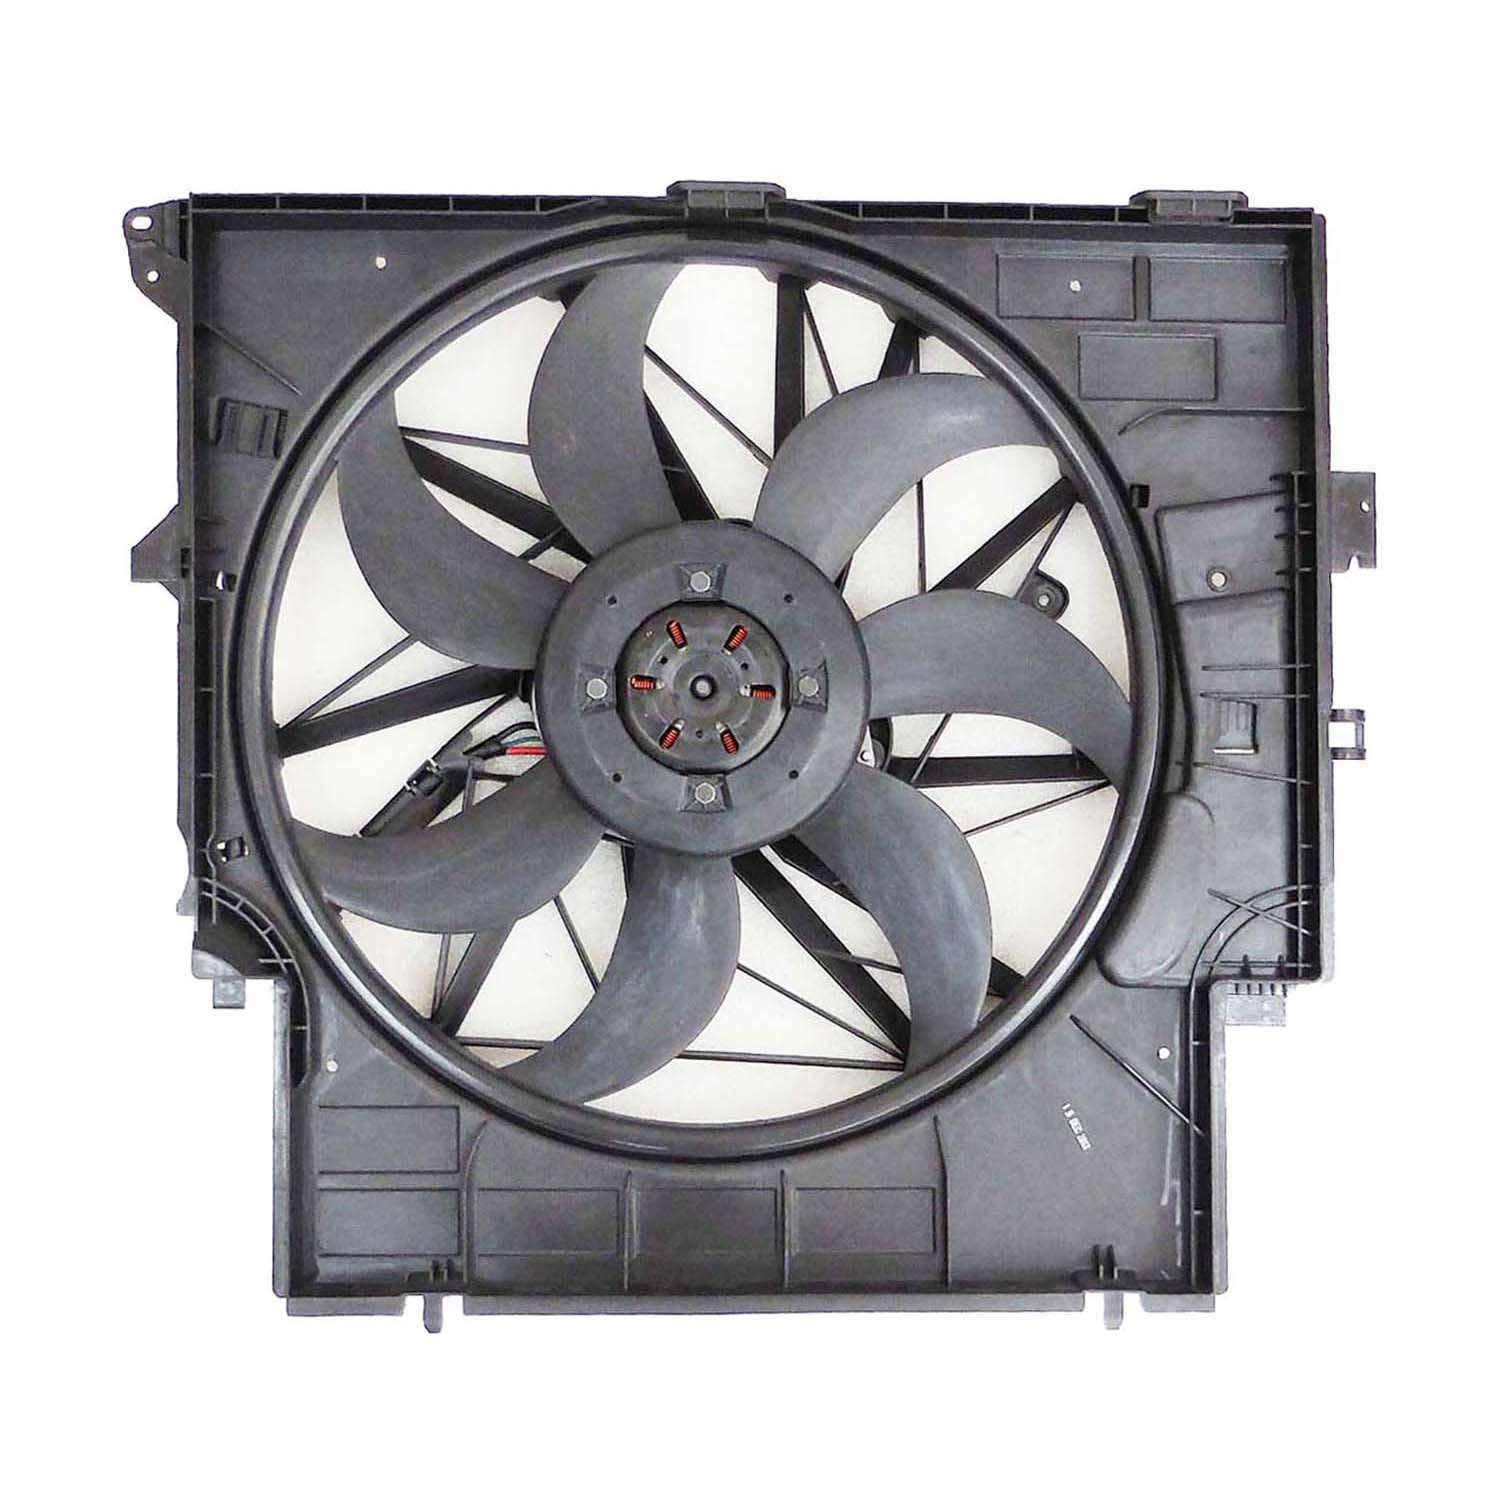 CPP Replacement Engine Cooling Fan Assembly BM3115114 for BMW X3, X4